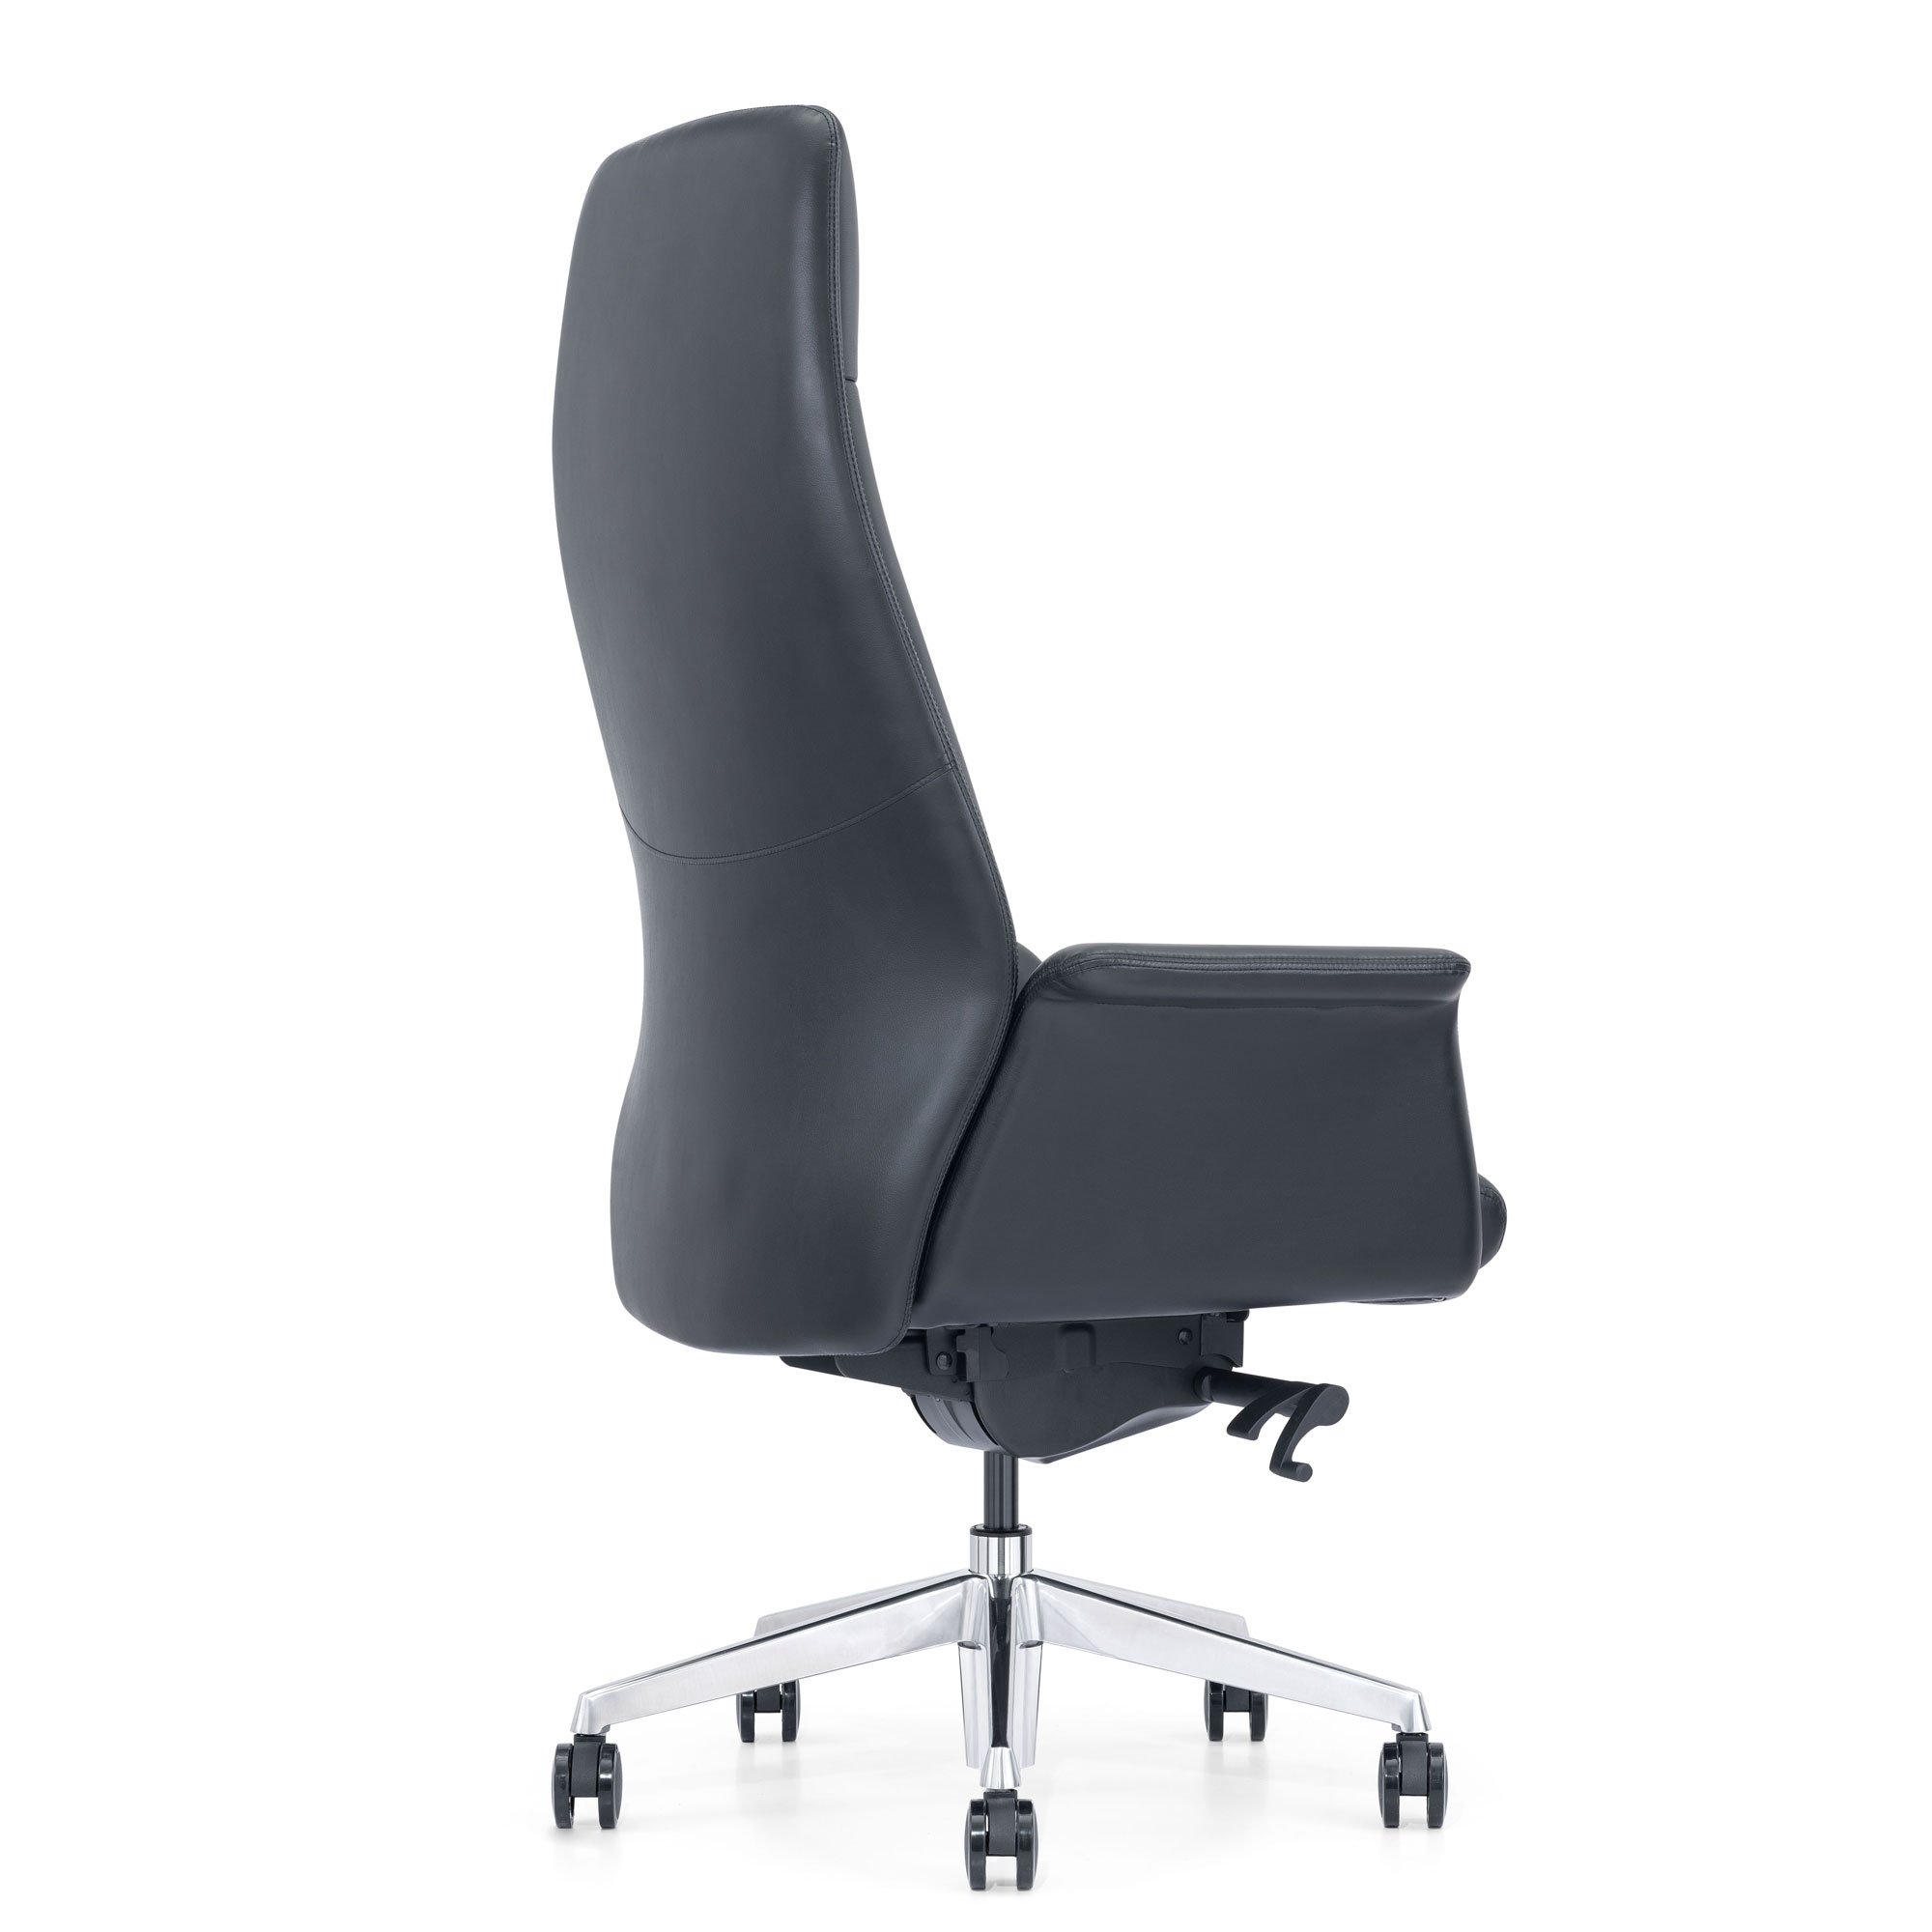 Bkack Leather Chair, Back Angle